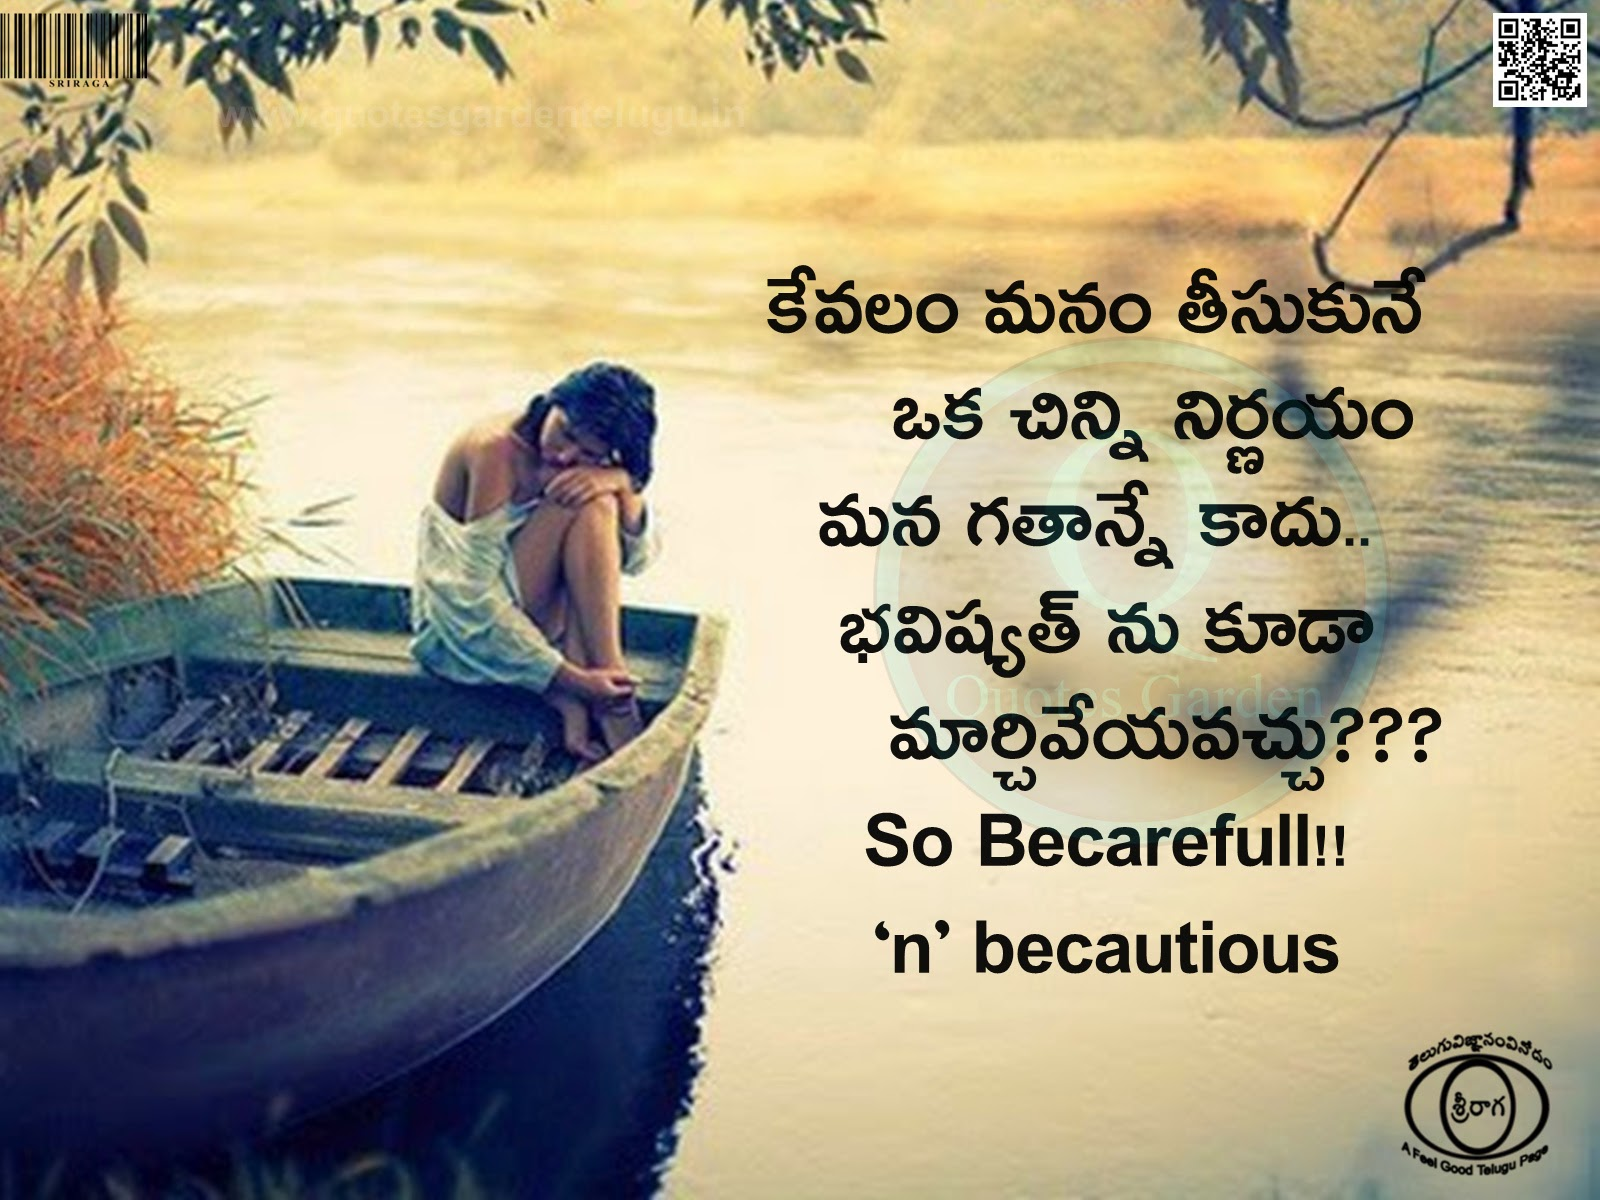 Best Telugu Quotes images n HD Wallpapers 12.02.15